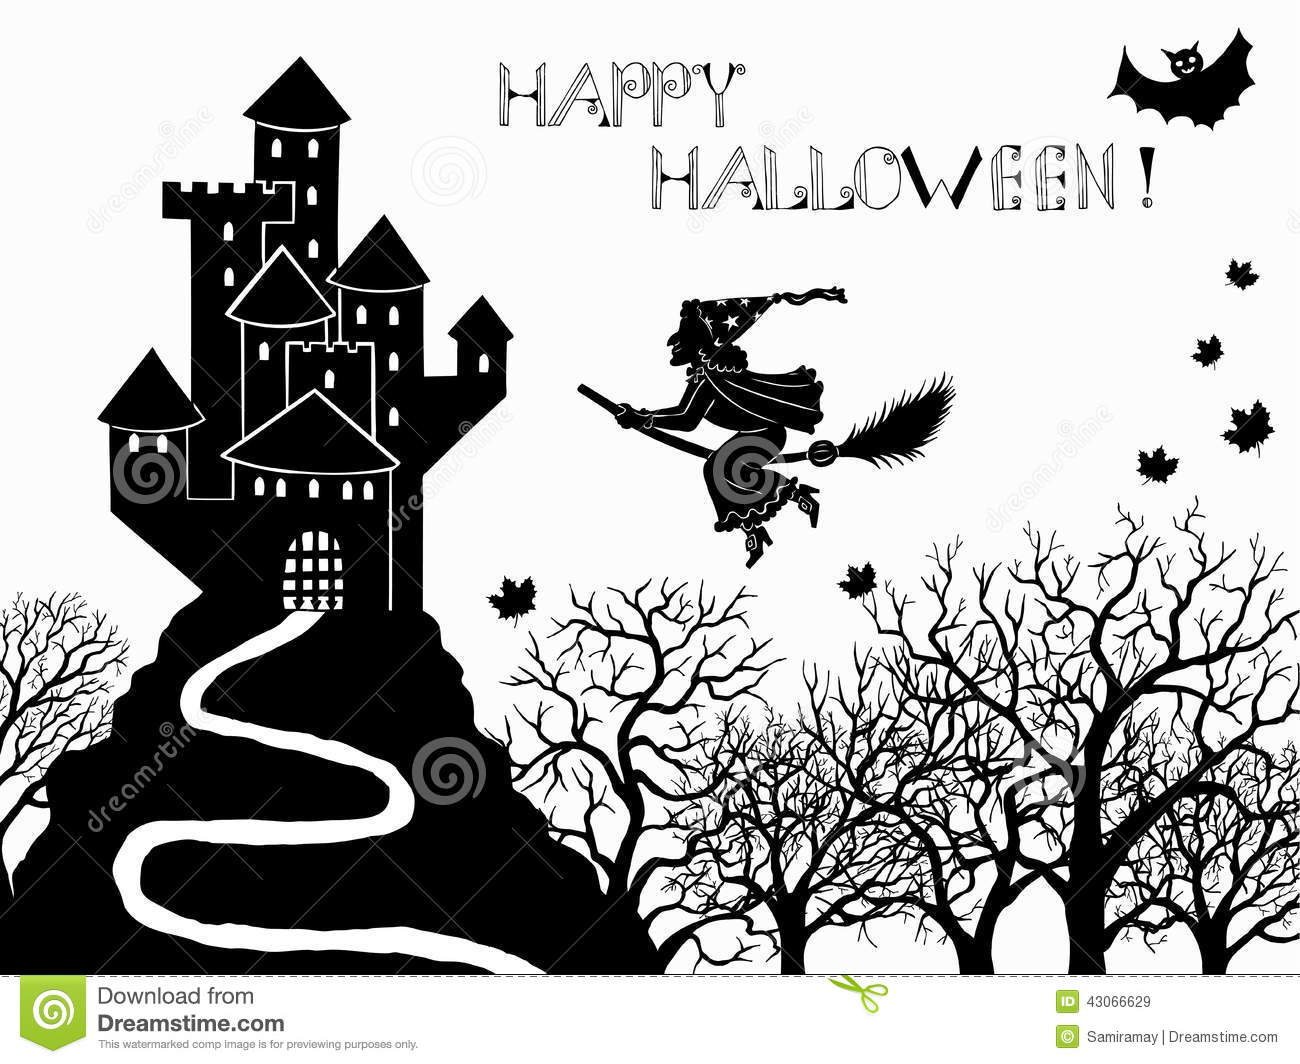 Halloween Invitations Templates was adorable invitations example